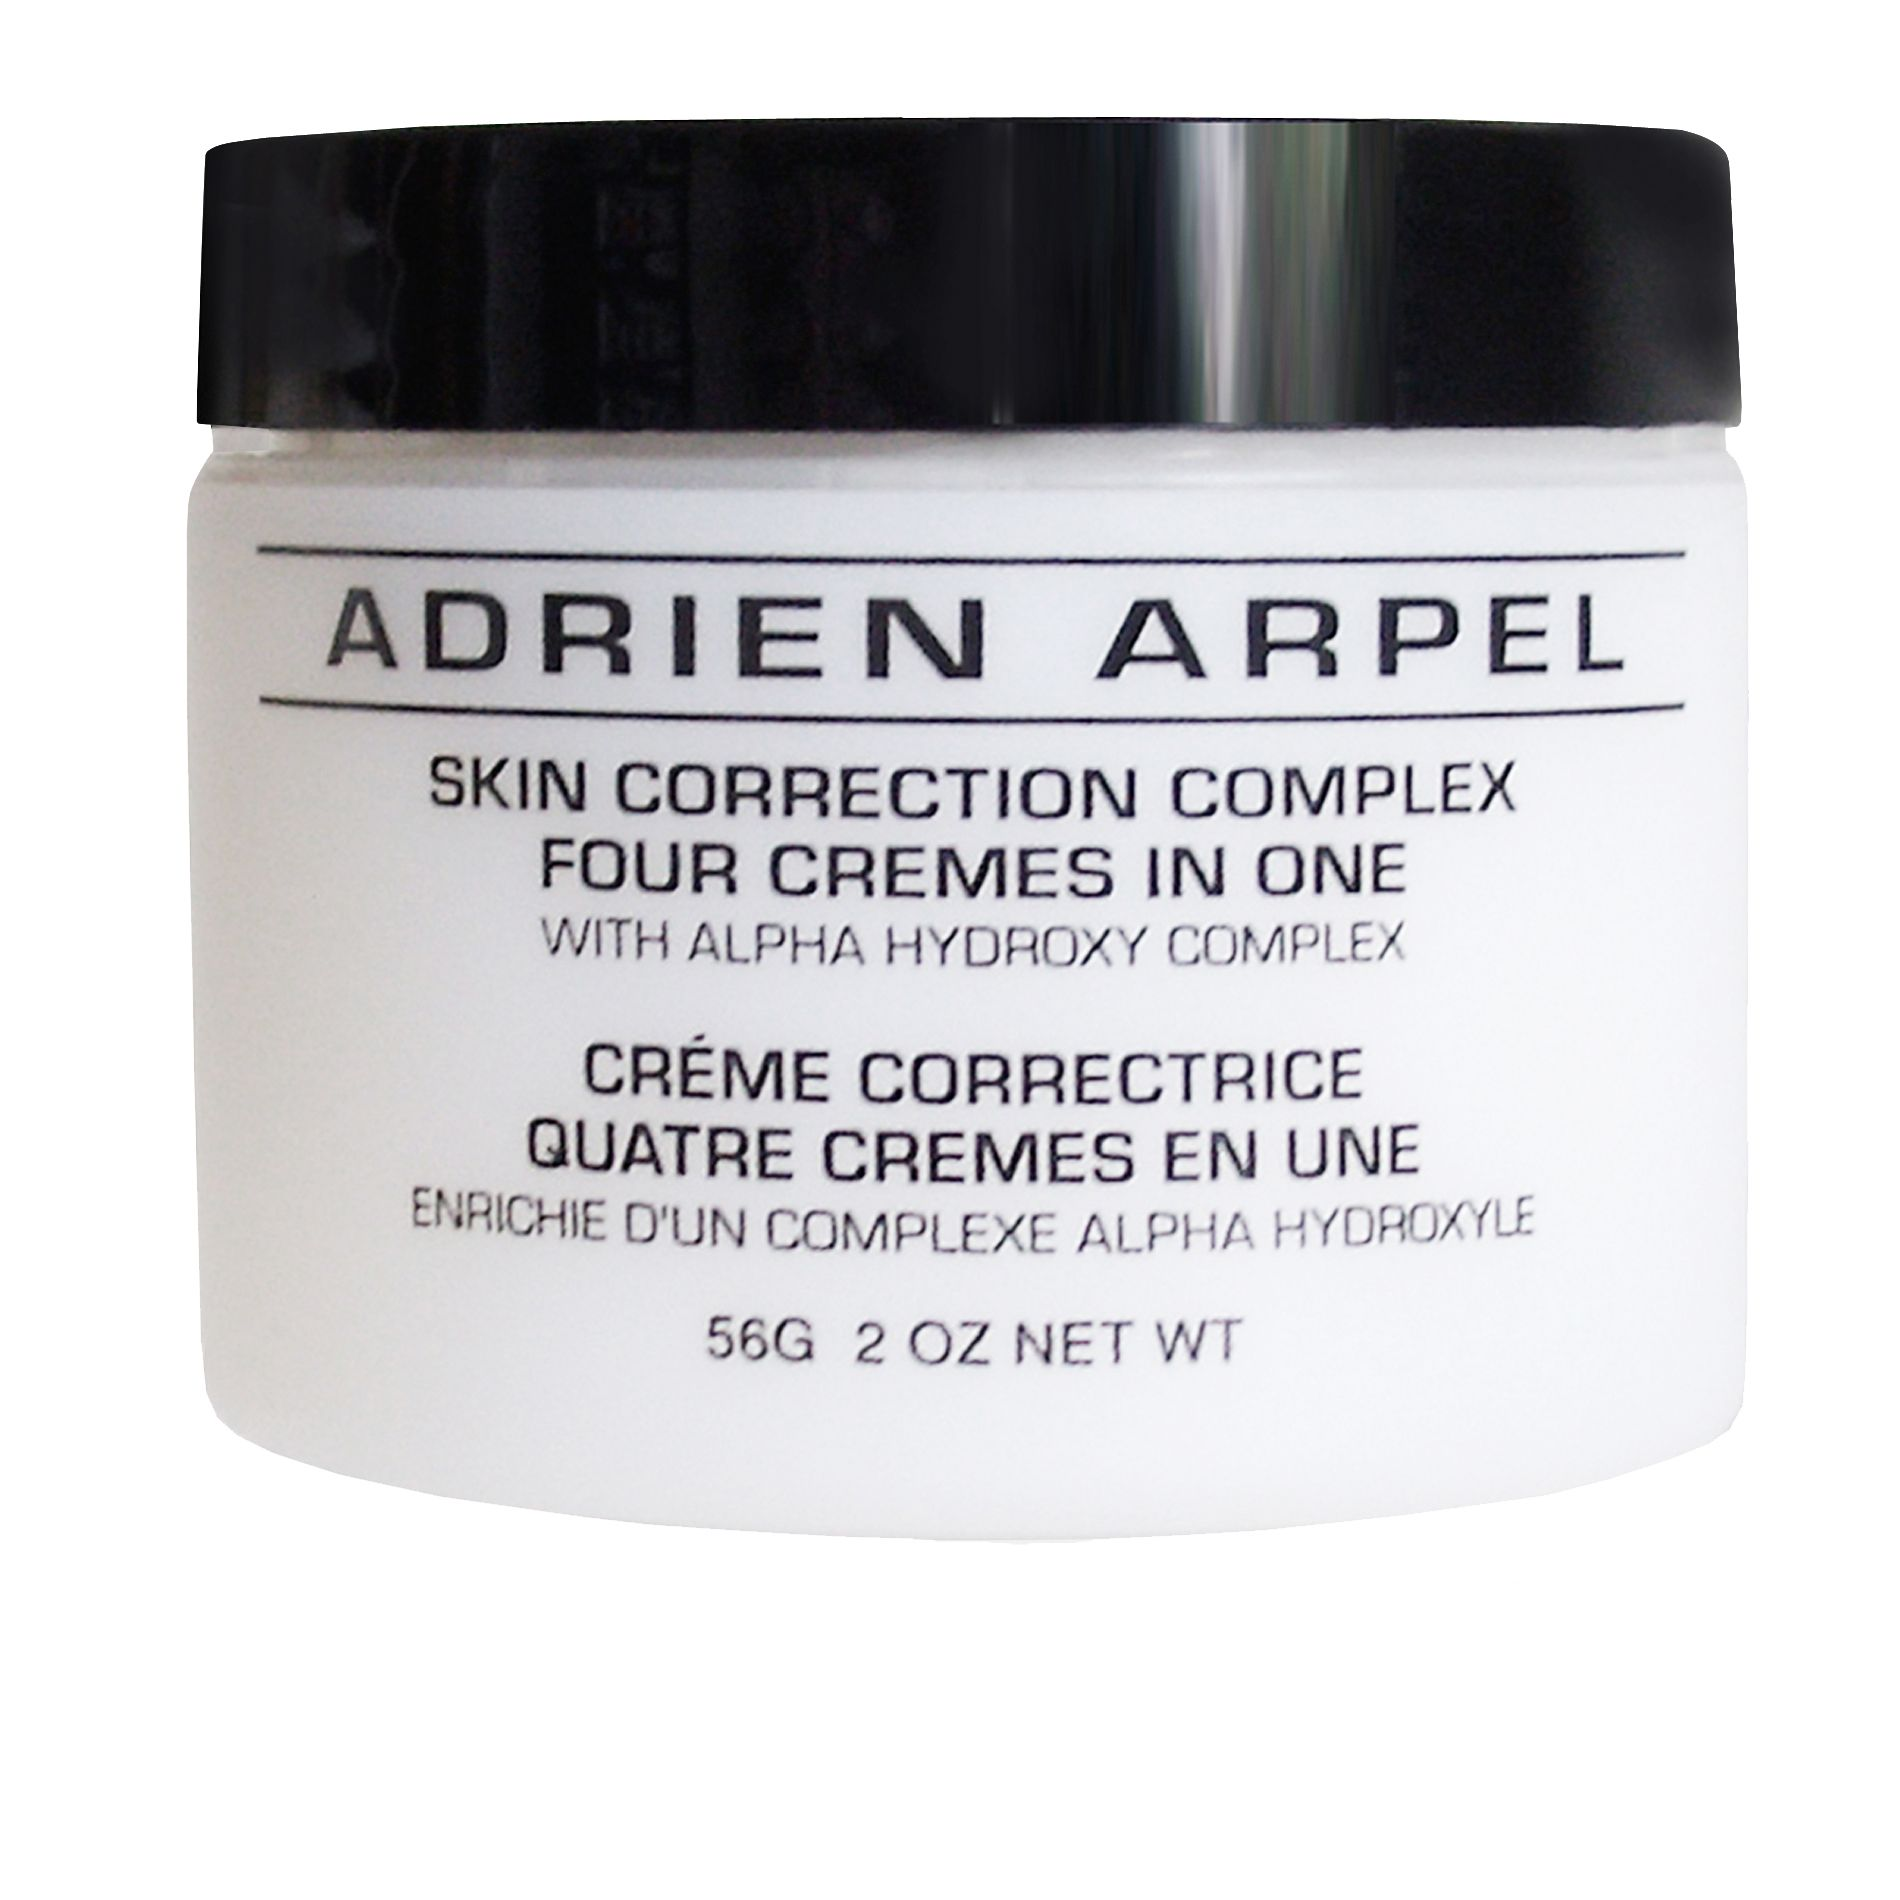 Adrien Arpel 4-in-1 Skin Correction Complex